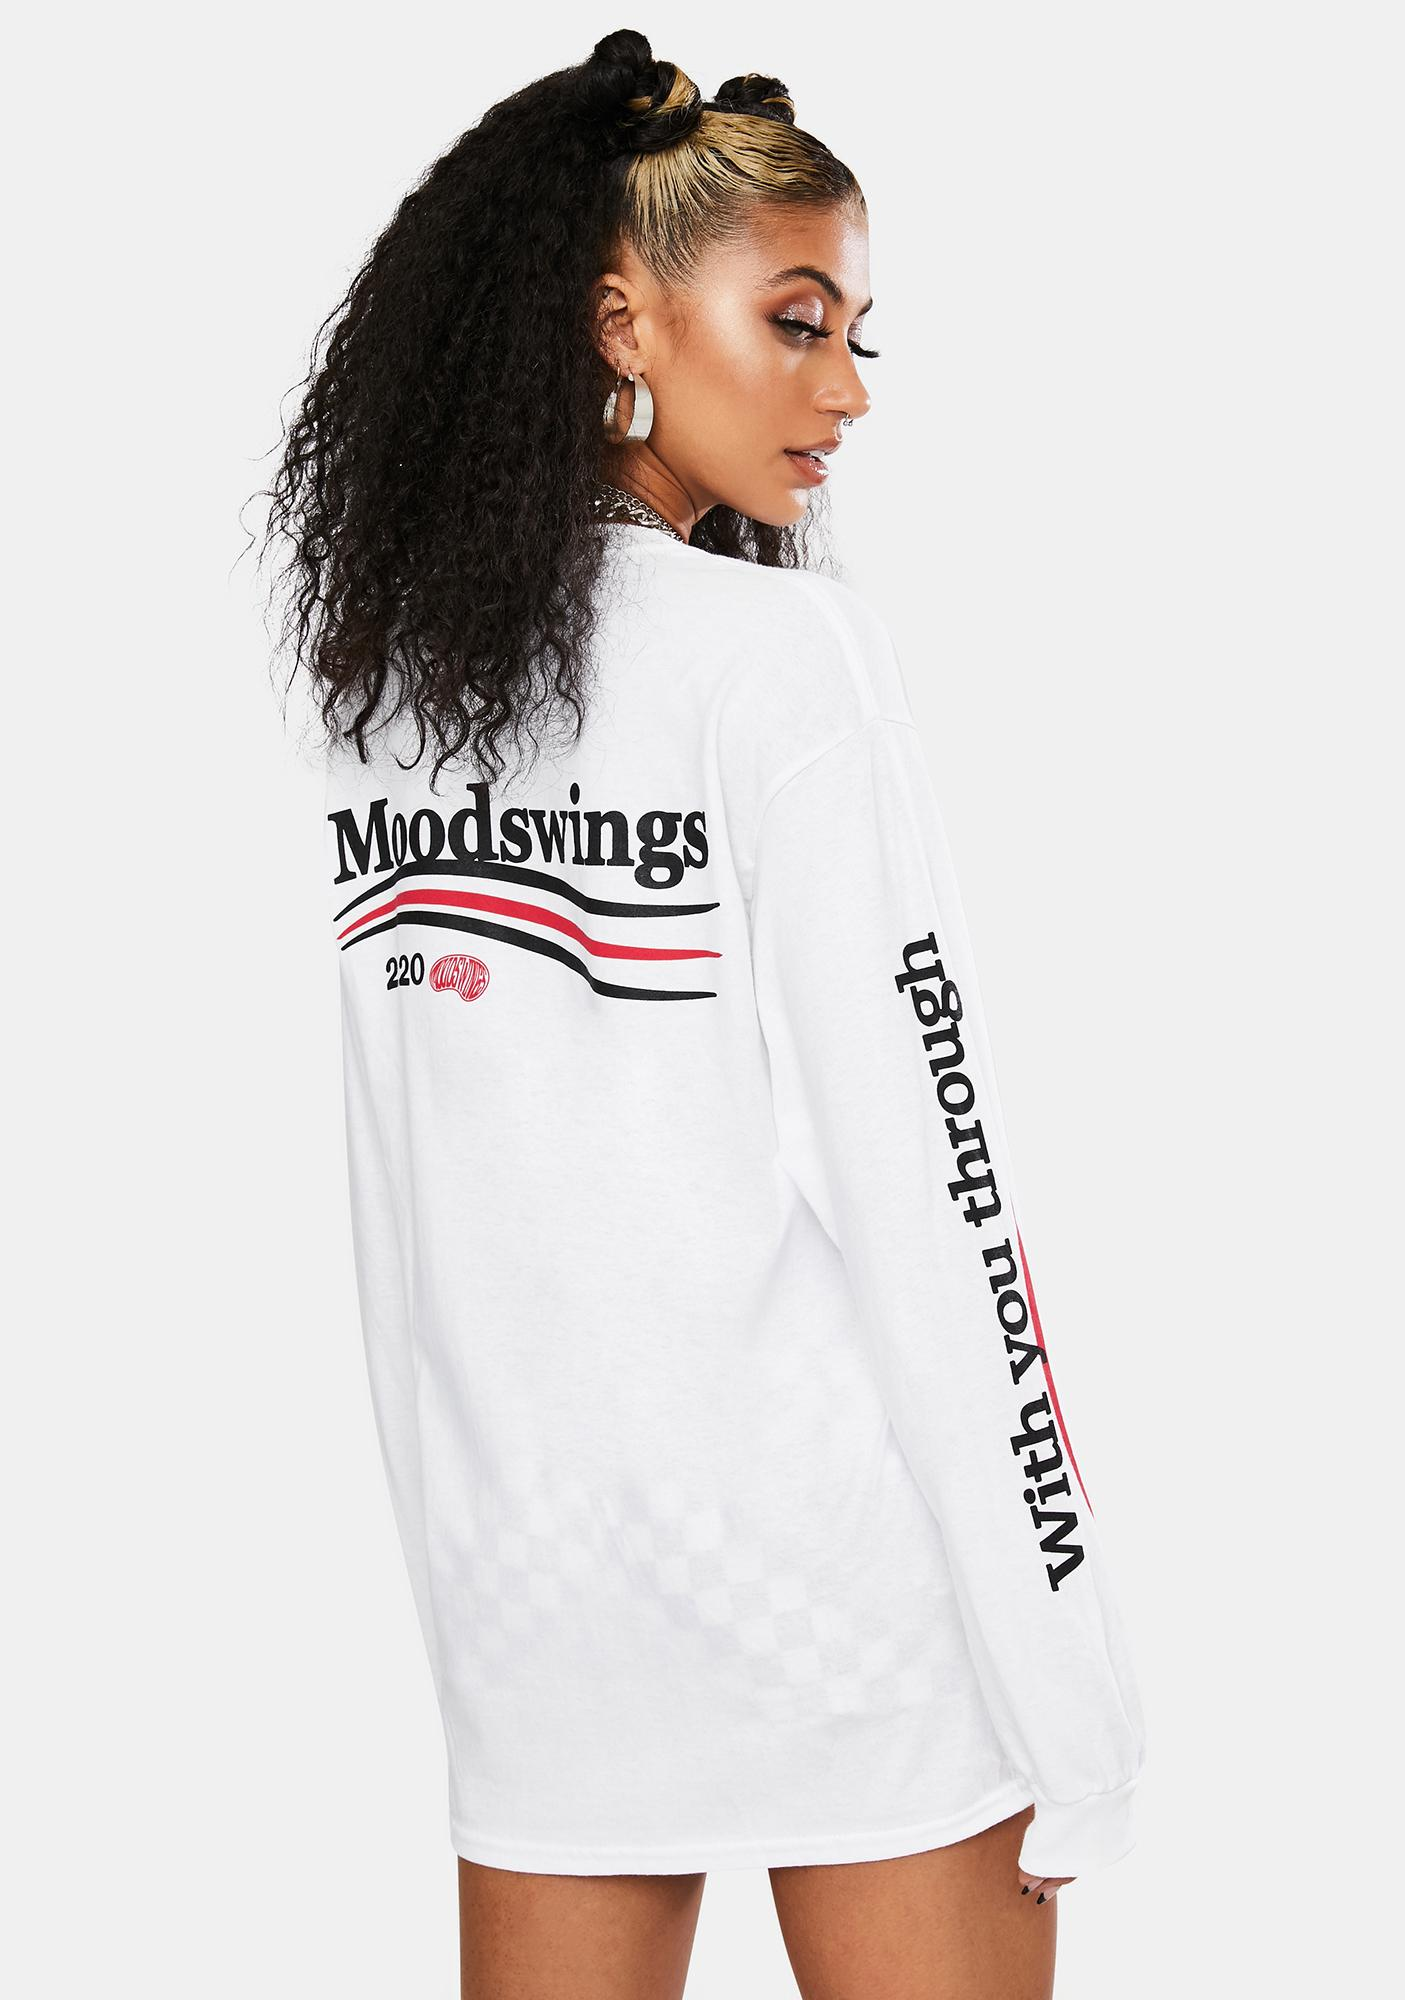 MOODSWINGS 20 20 Vision Graphic Tee